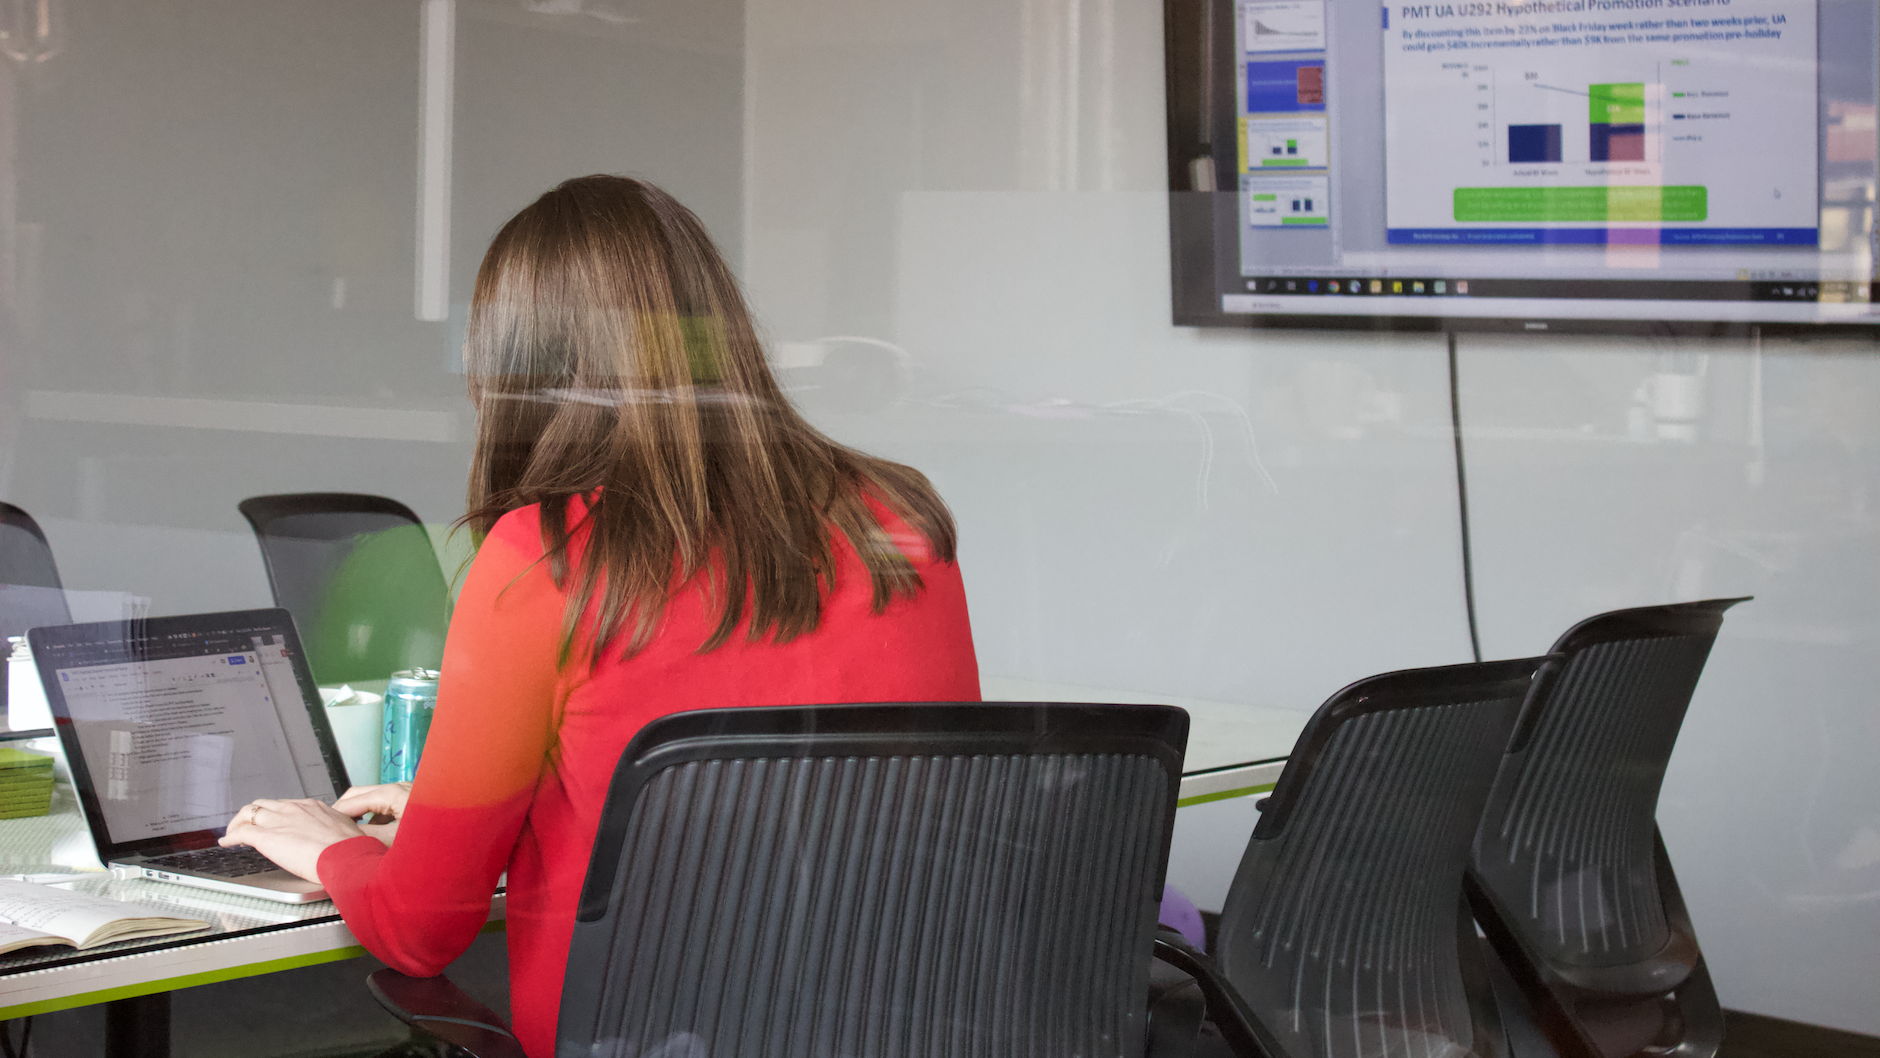 A designer sits at a conference room table, ready for a remote meeting in Zoom